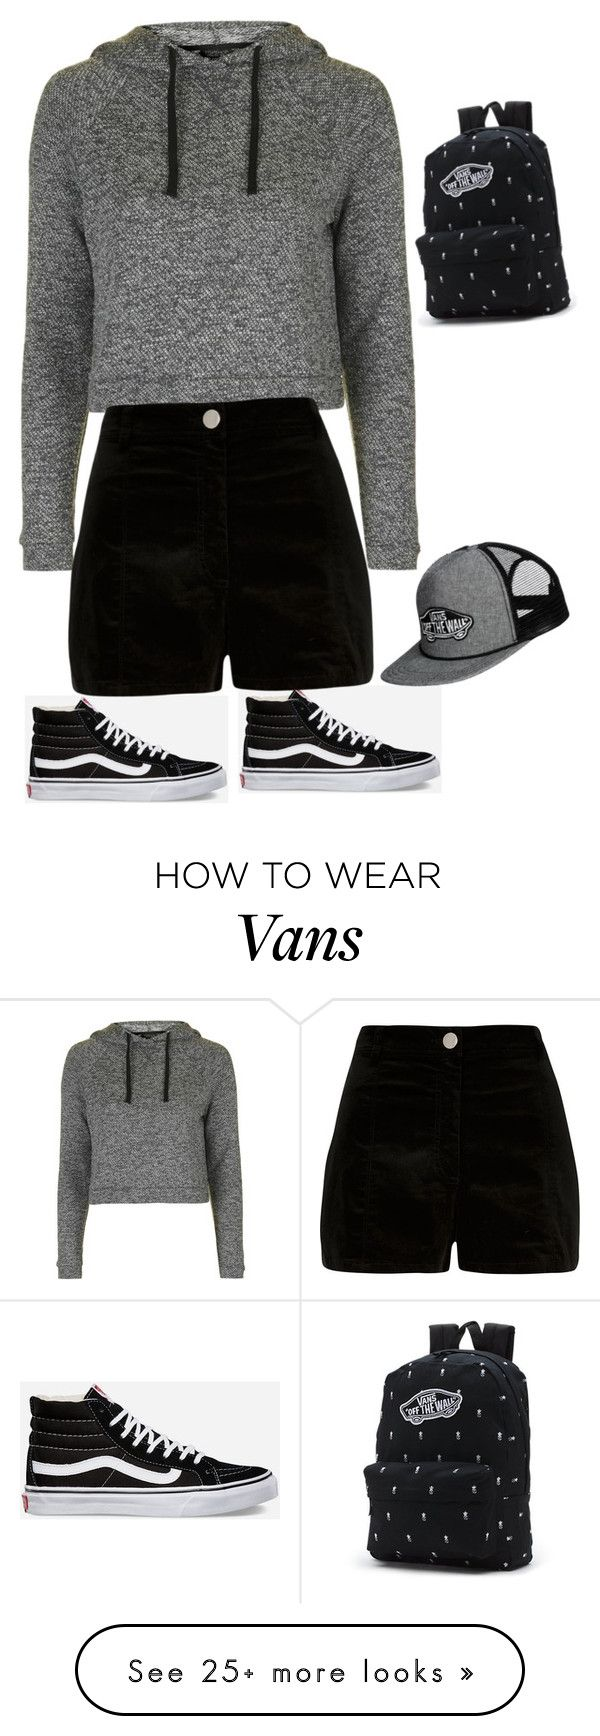 """tumblr grunge¿"" by sallygonxalez on Polyvore featuring Topshop, Vans and River Island"